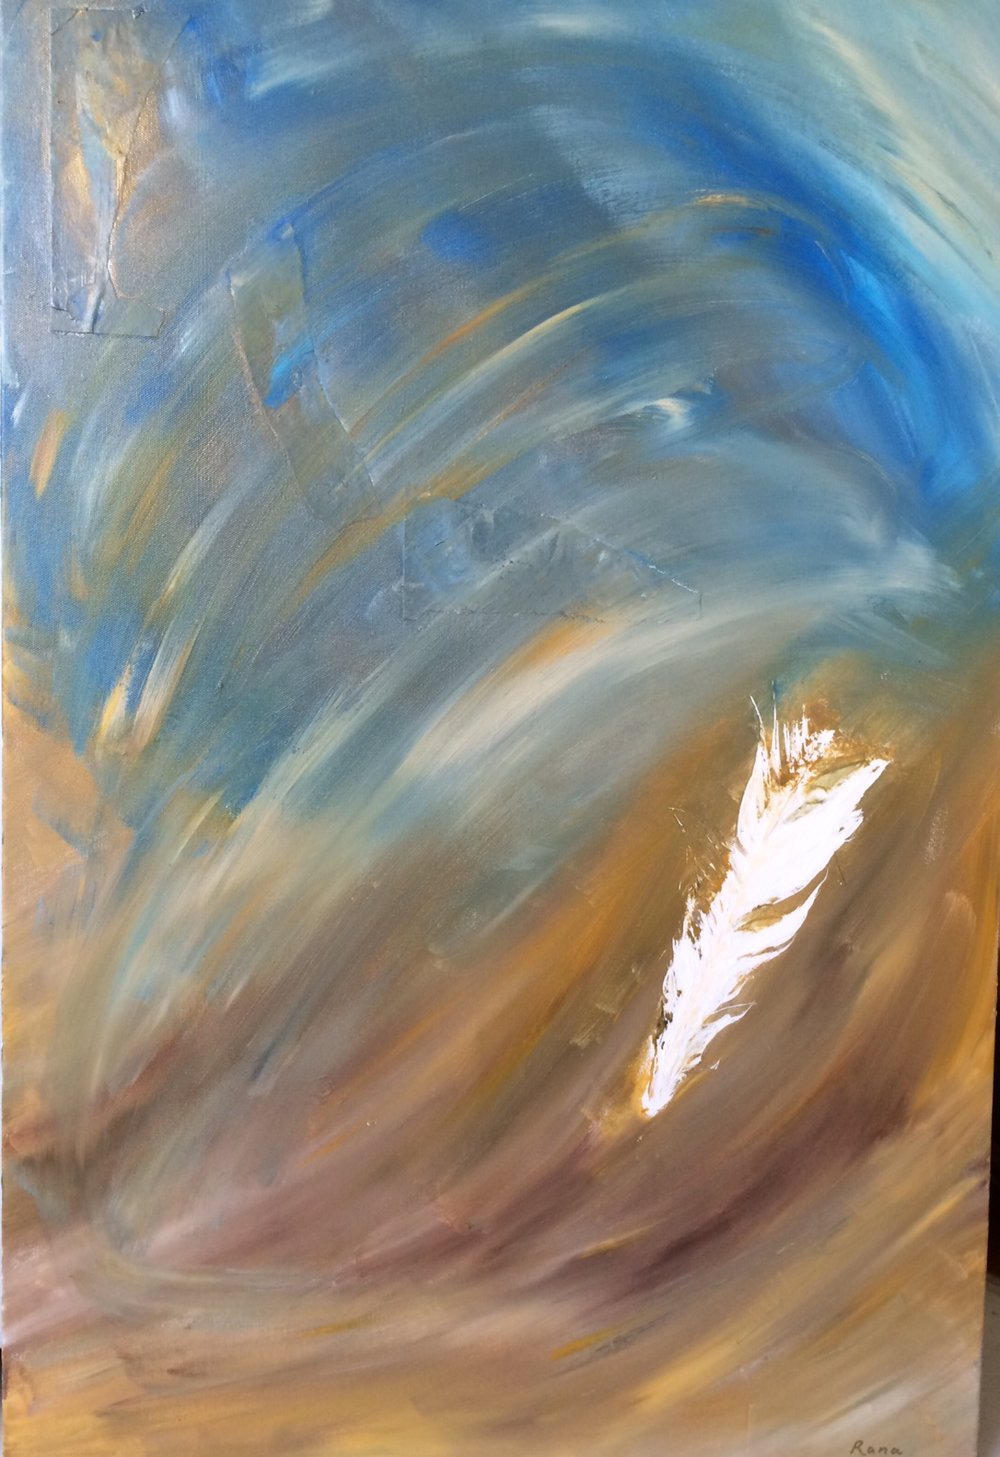 Winds of Change, 24 x 36 Acrylic and Mixed Media on Canvas, 2014